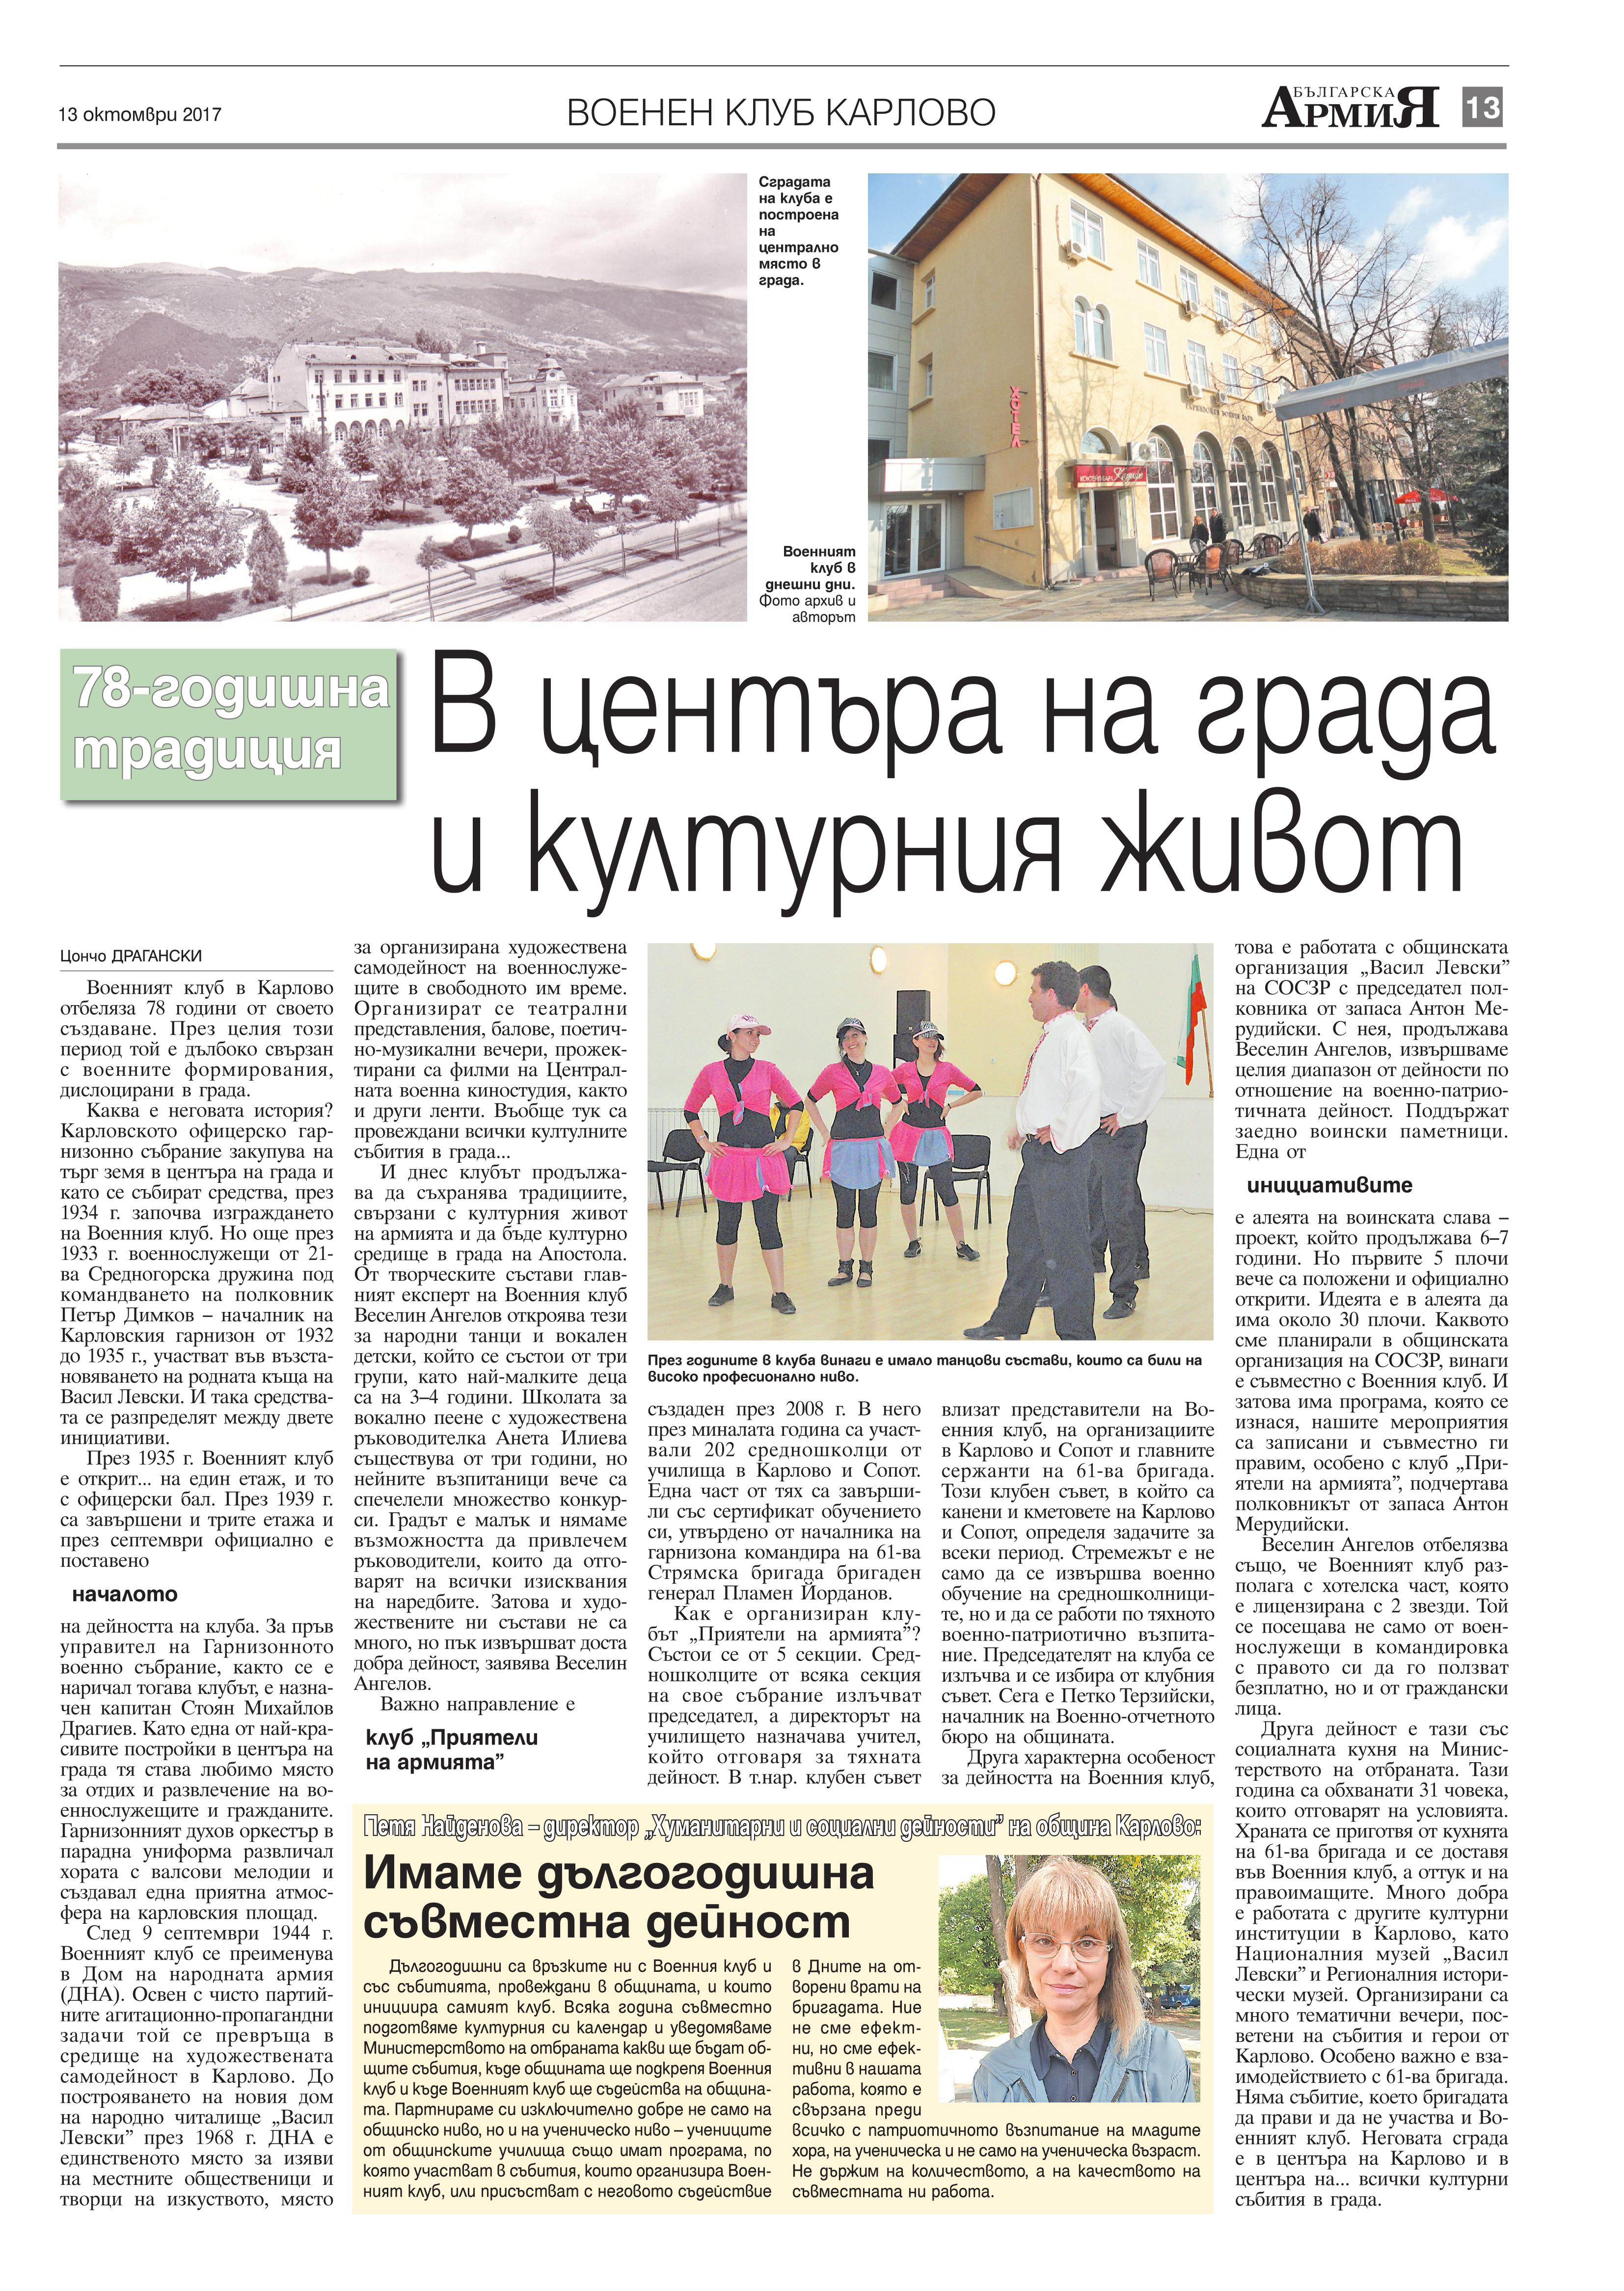 http://armymedia.bg/wp-content/uploads/2015/06/13.page1_-34.jpg